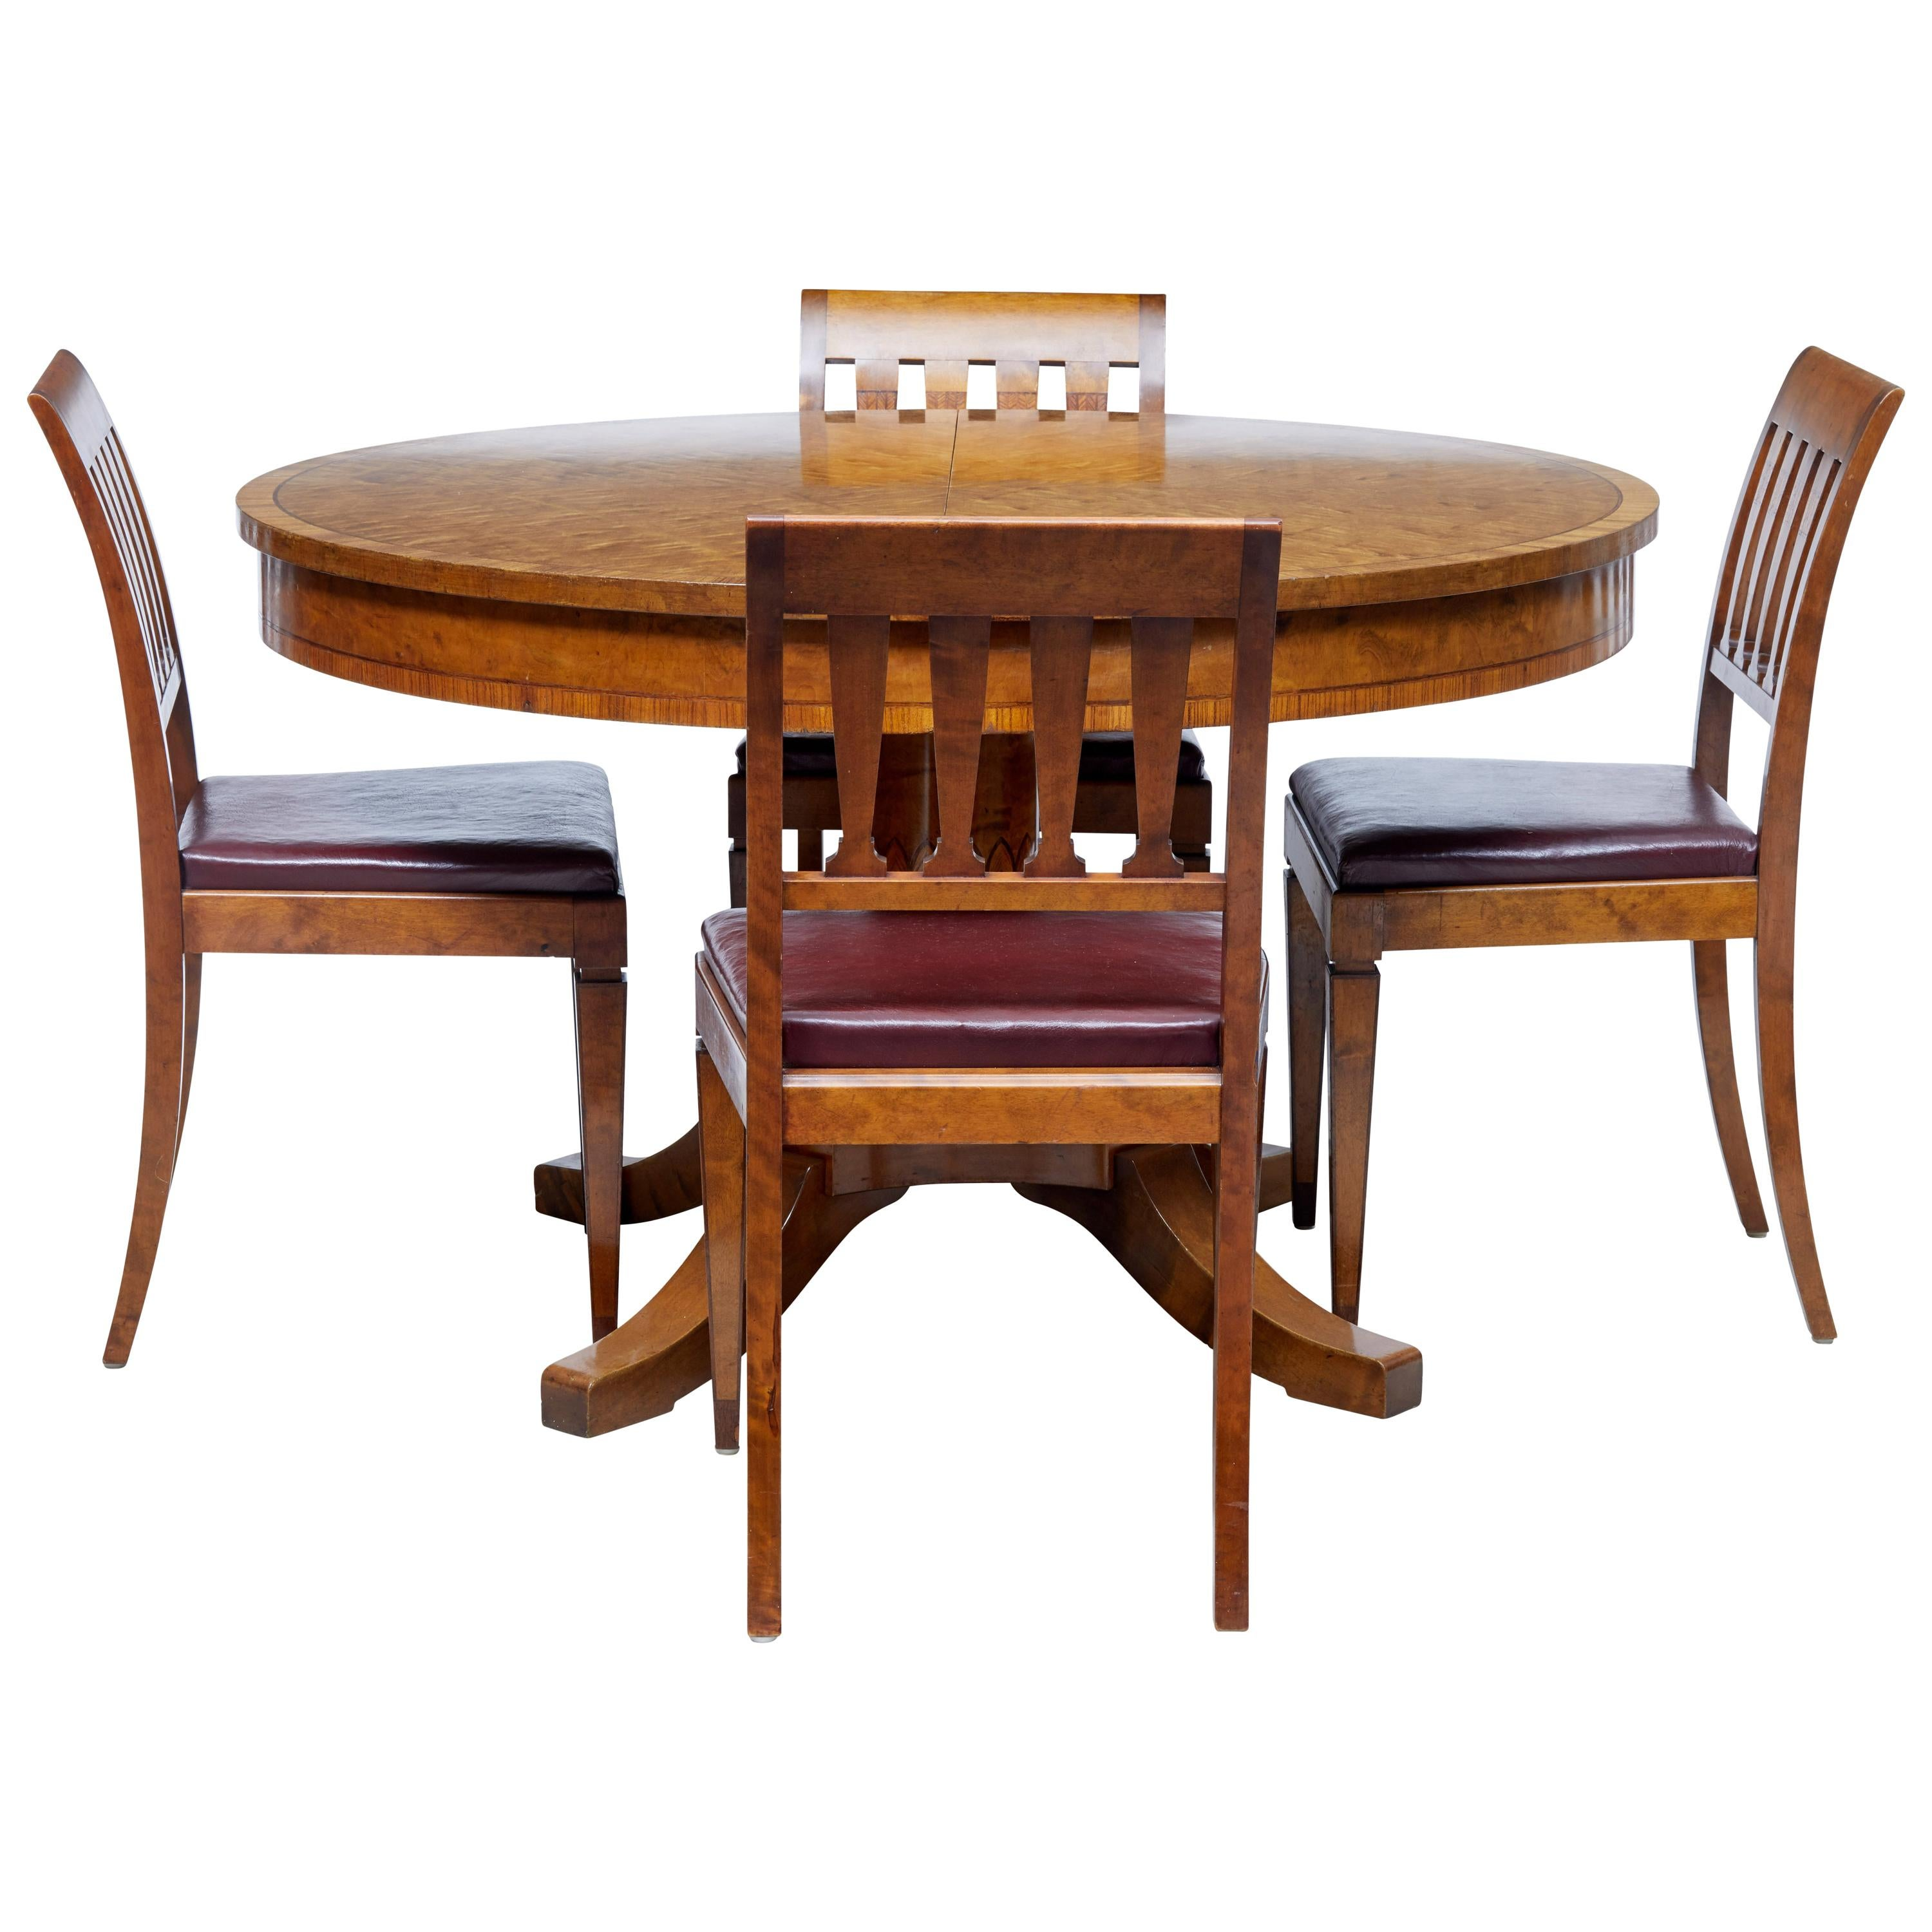 1920s Scandinavian Birch Dining Table And 4 Matching Chairs